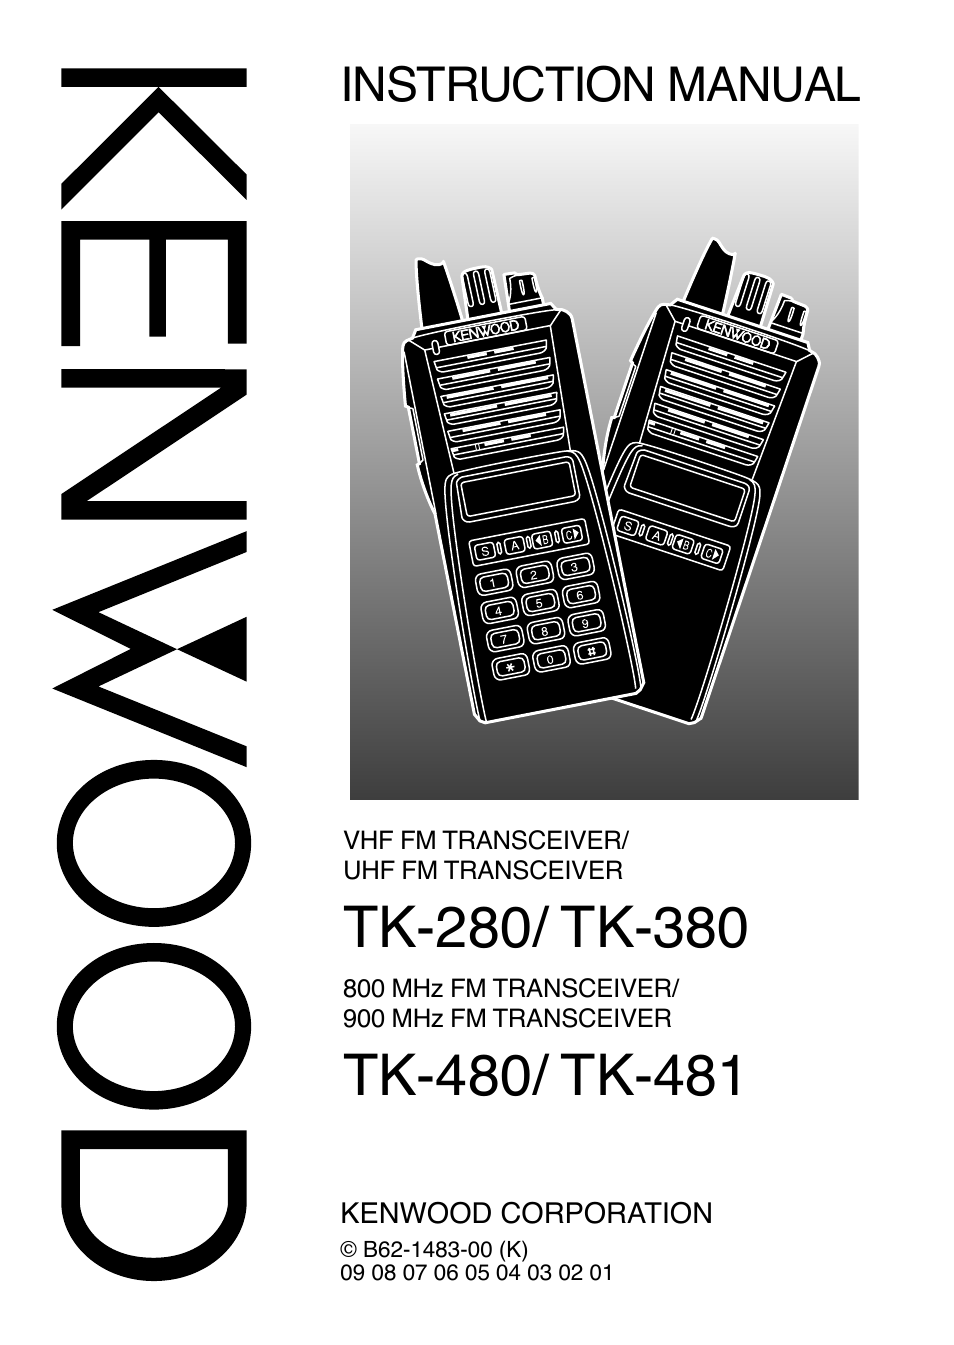 kenwood tk 380 user manual 37 pages also for tk 480 481 rh manualsdir com Kenwood Tk 280 Kenwood Radios